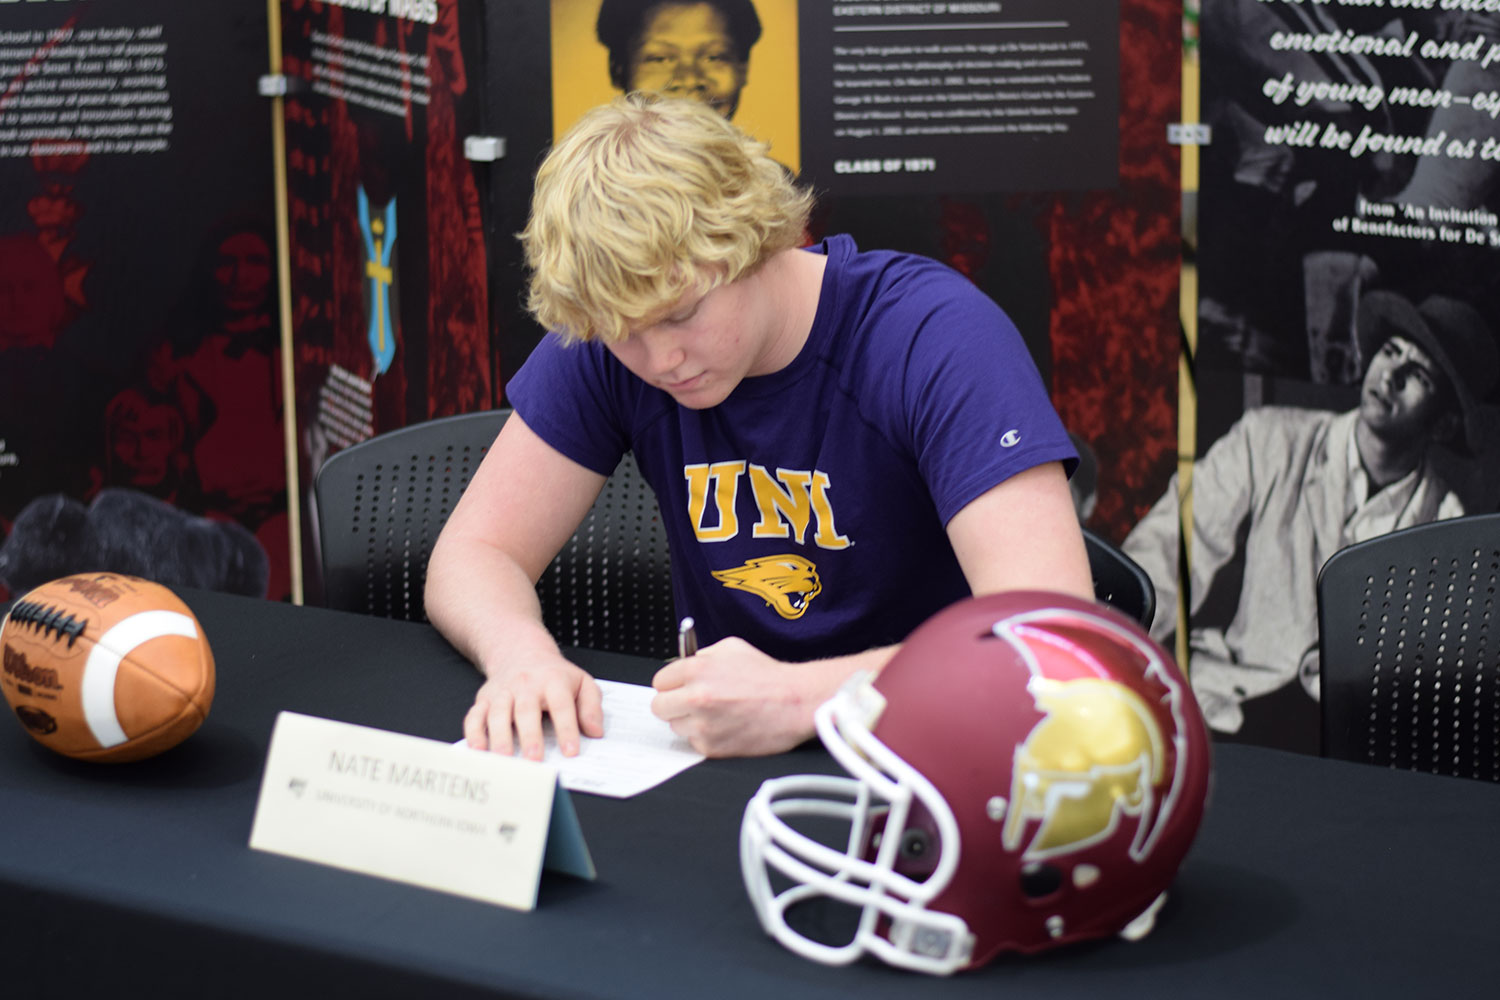 Nate Martens signs to Northern Iowa University.